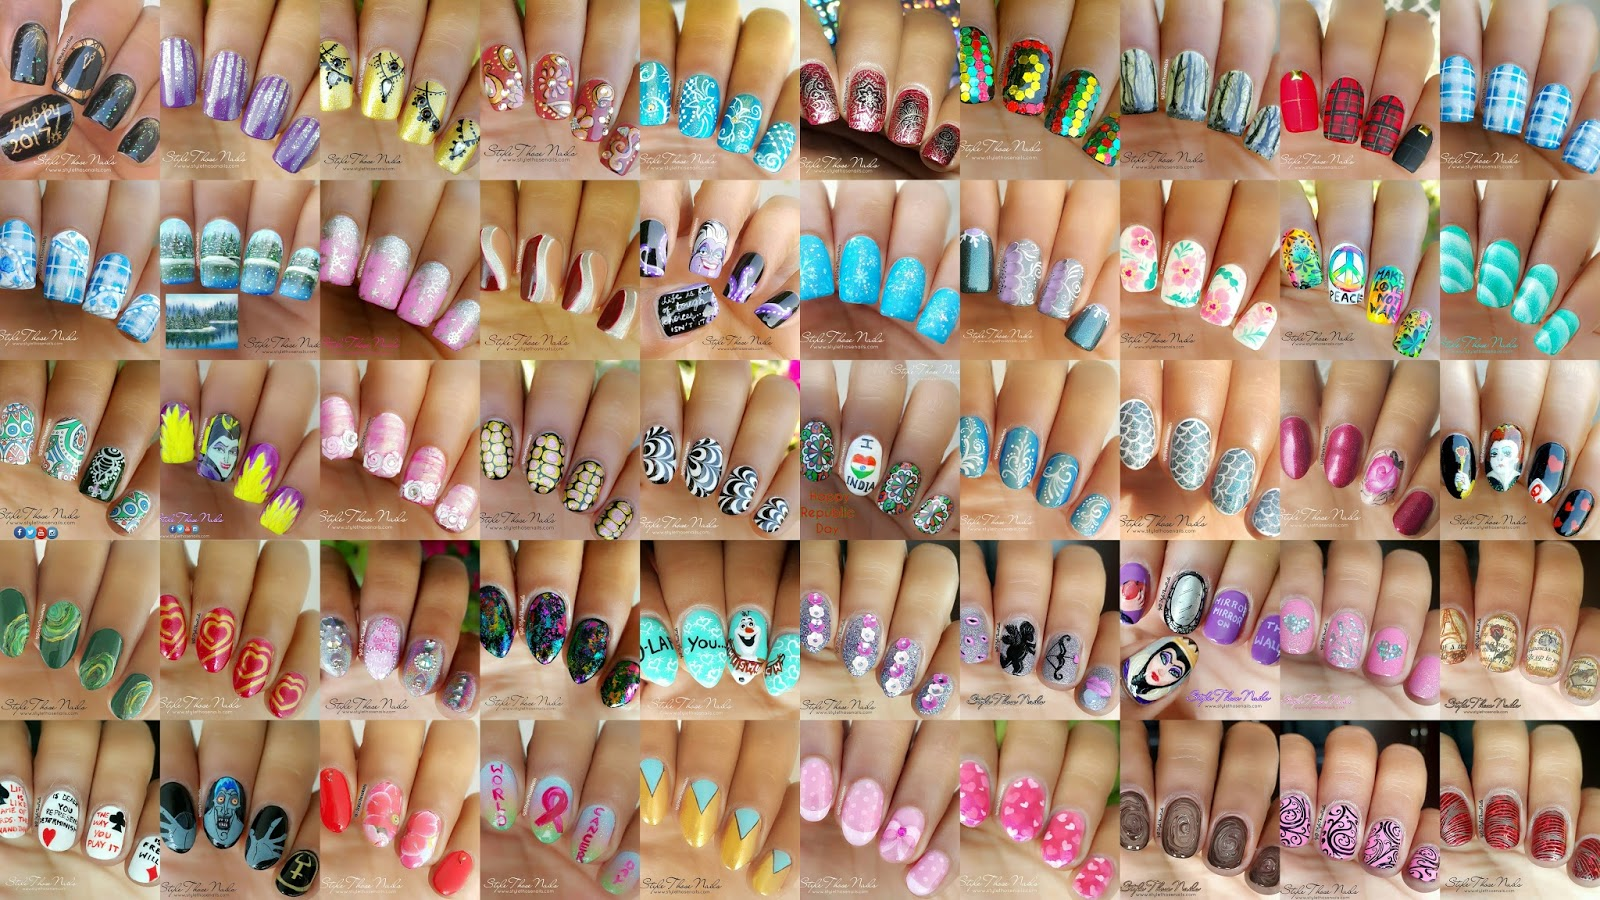 Style Those Nails: 50 nail designs - nailart compilation of 50 days ...